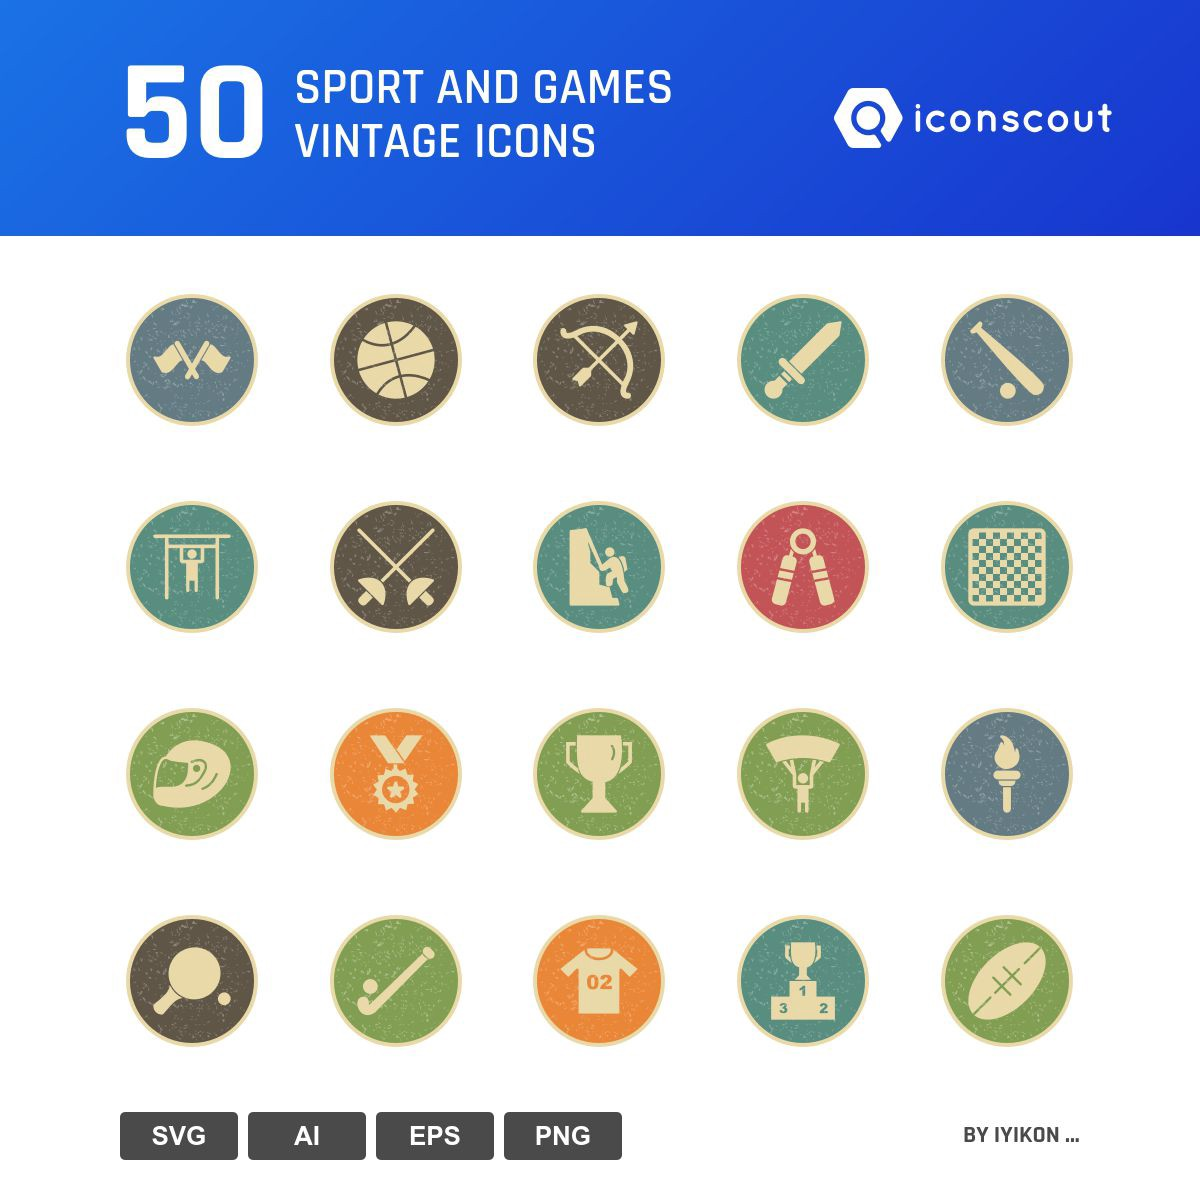 Sport And Games Vintage icons by IYIKON ...